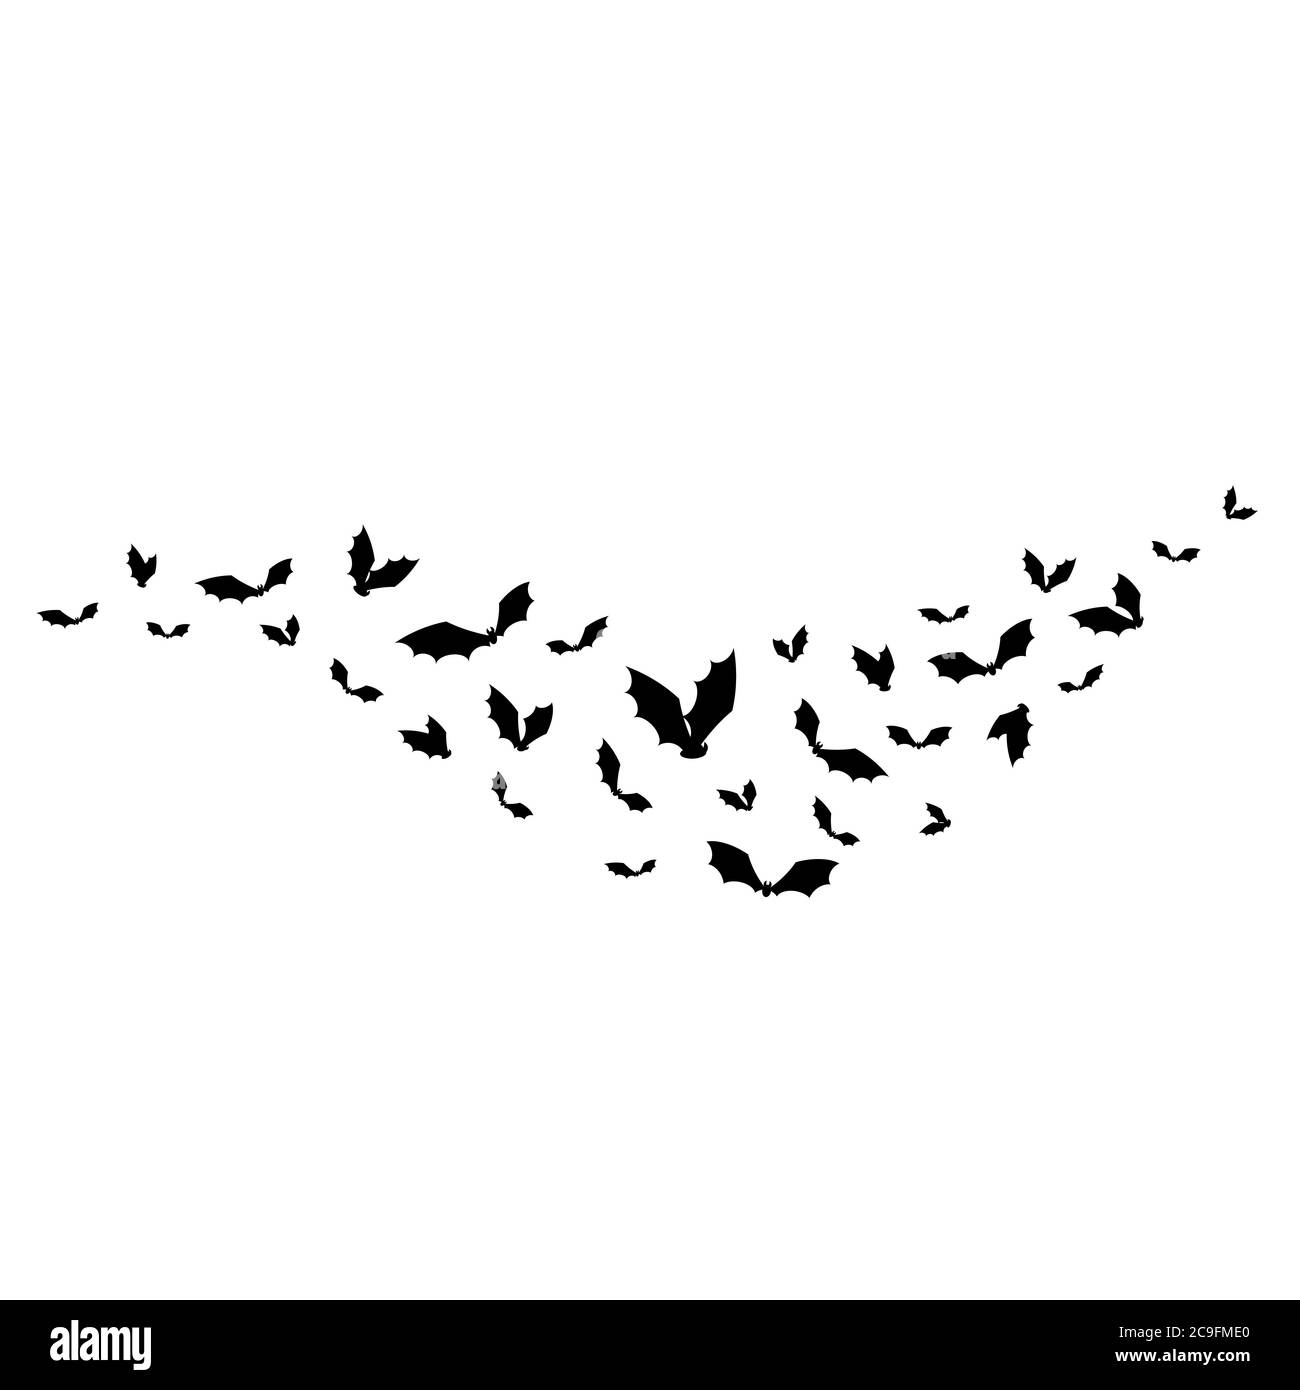 Halloween Wallpaper With Black Flying Bats On White Background Wavy Path Flat Vector Illustration Night Scary Spooky Mistic Mystery Clip Art Stock Vector Image Art Alamy